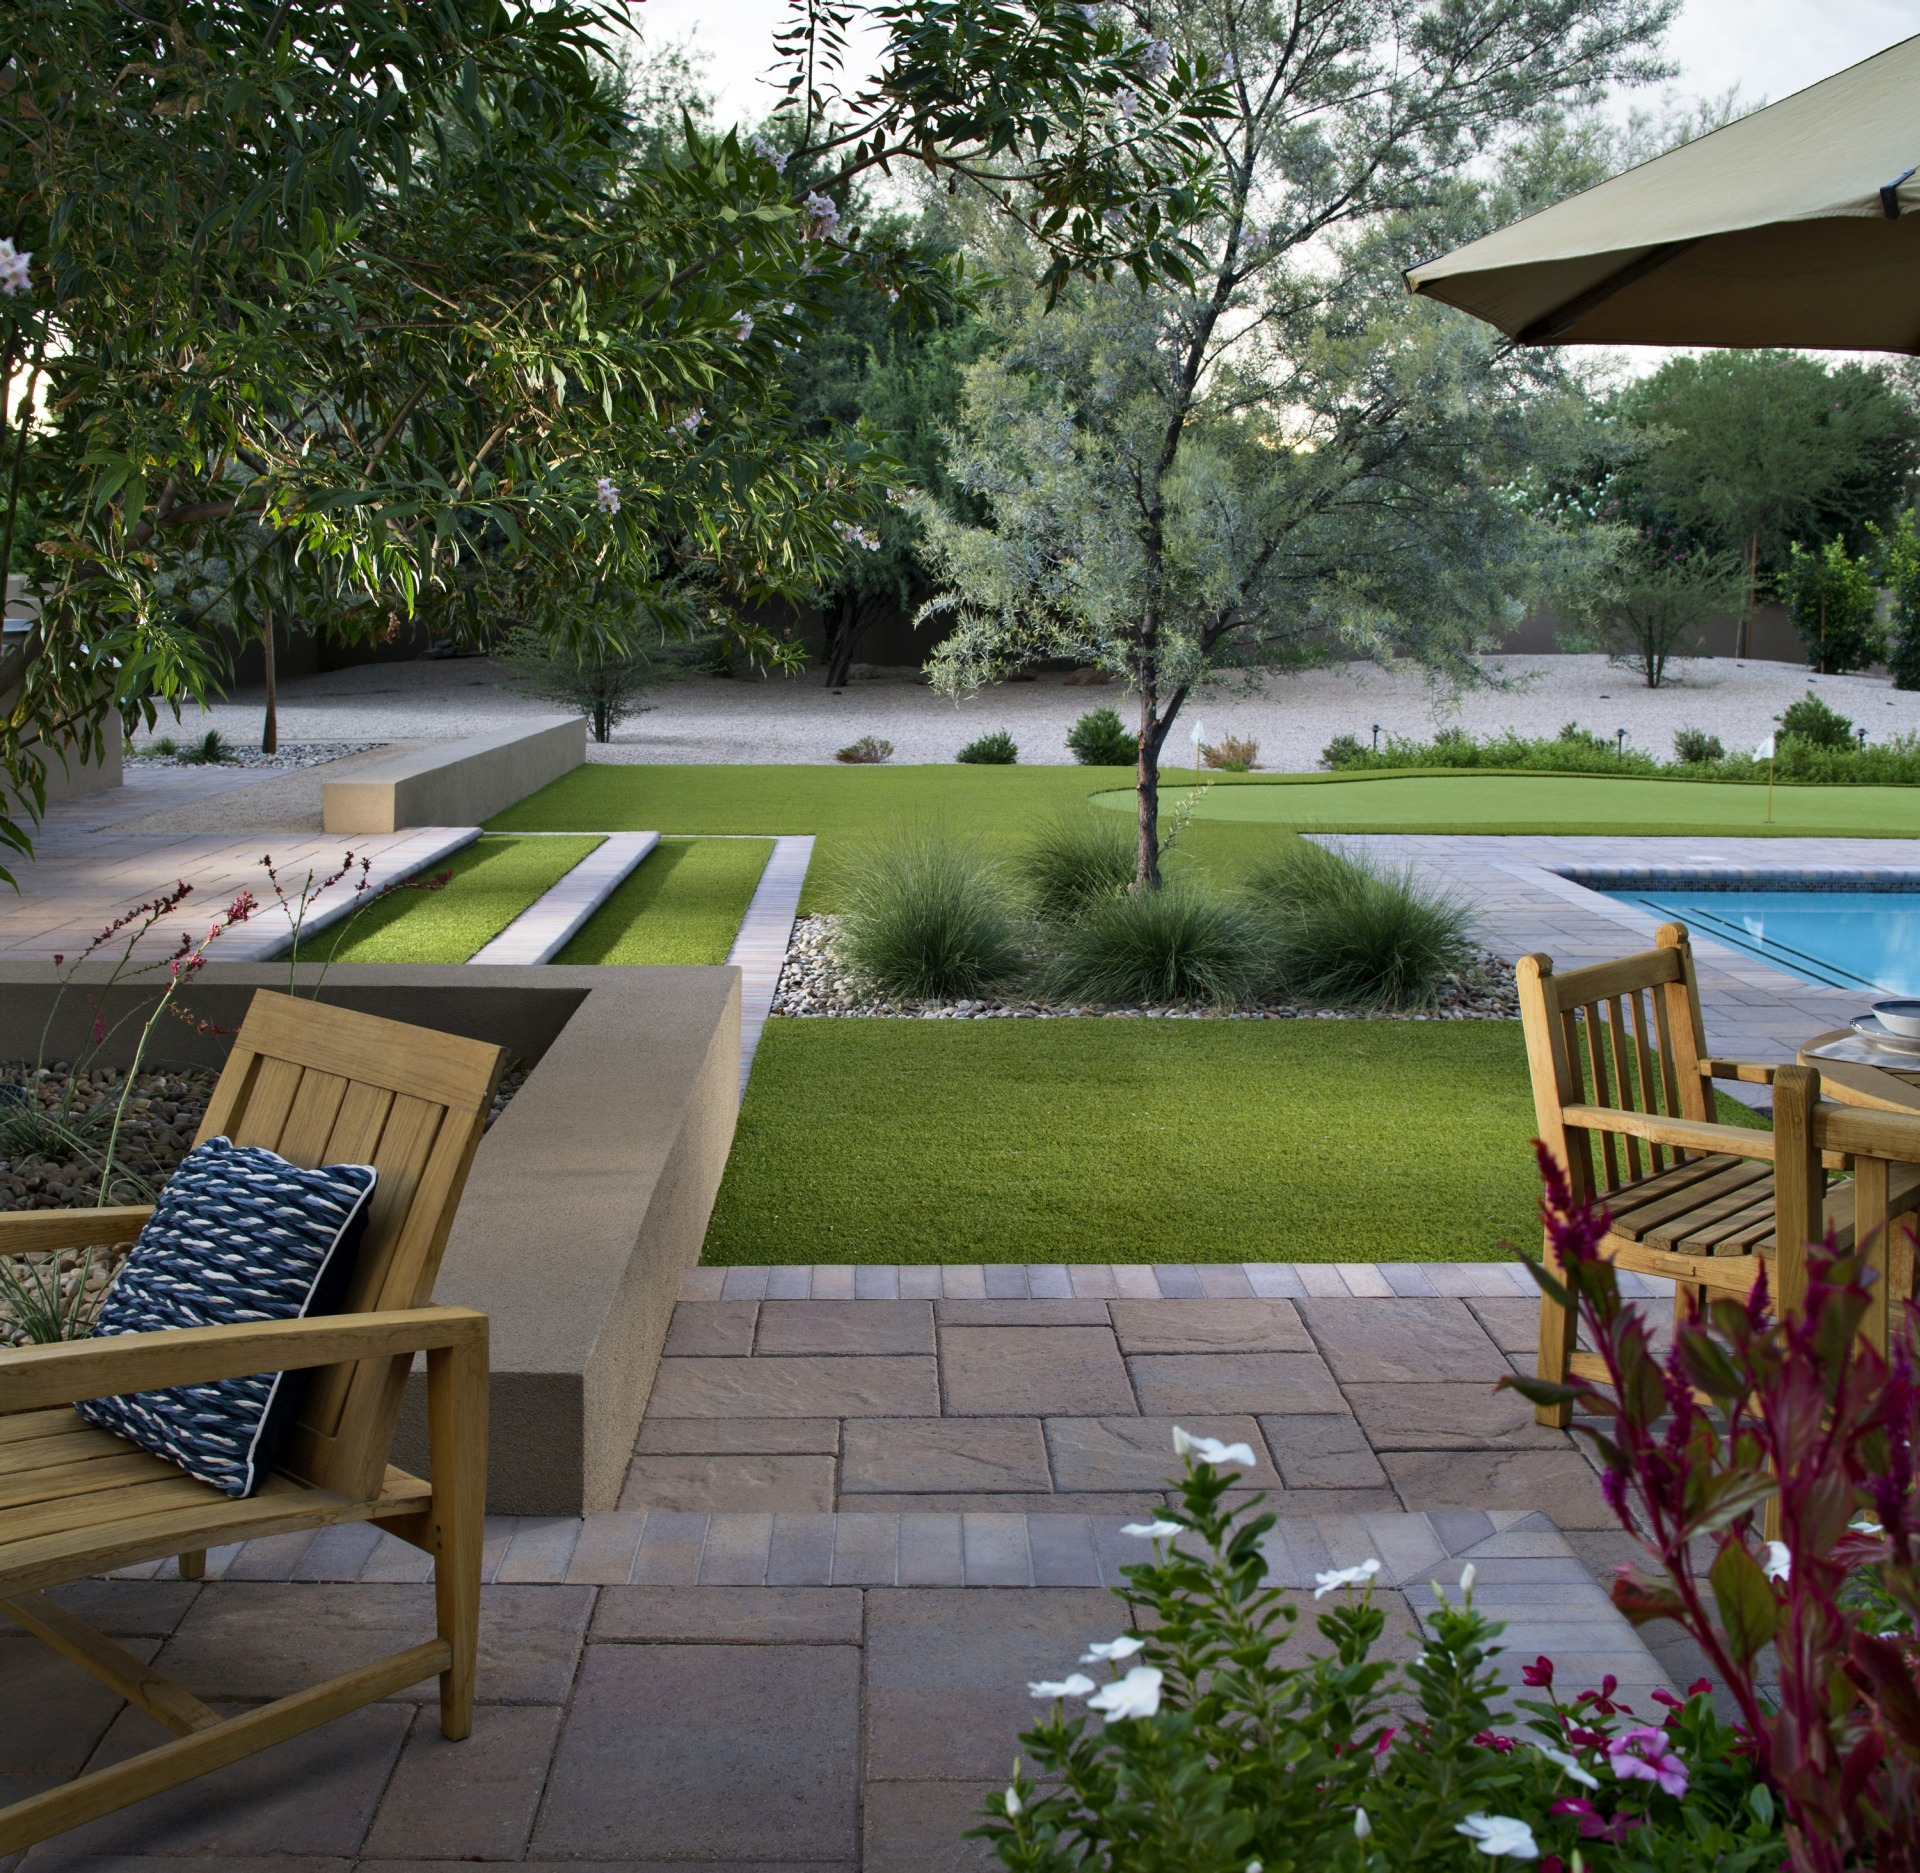 Paving Stones and Artificial Grass: Wellness retreat backyard